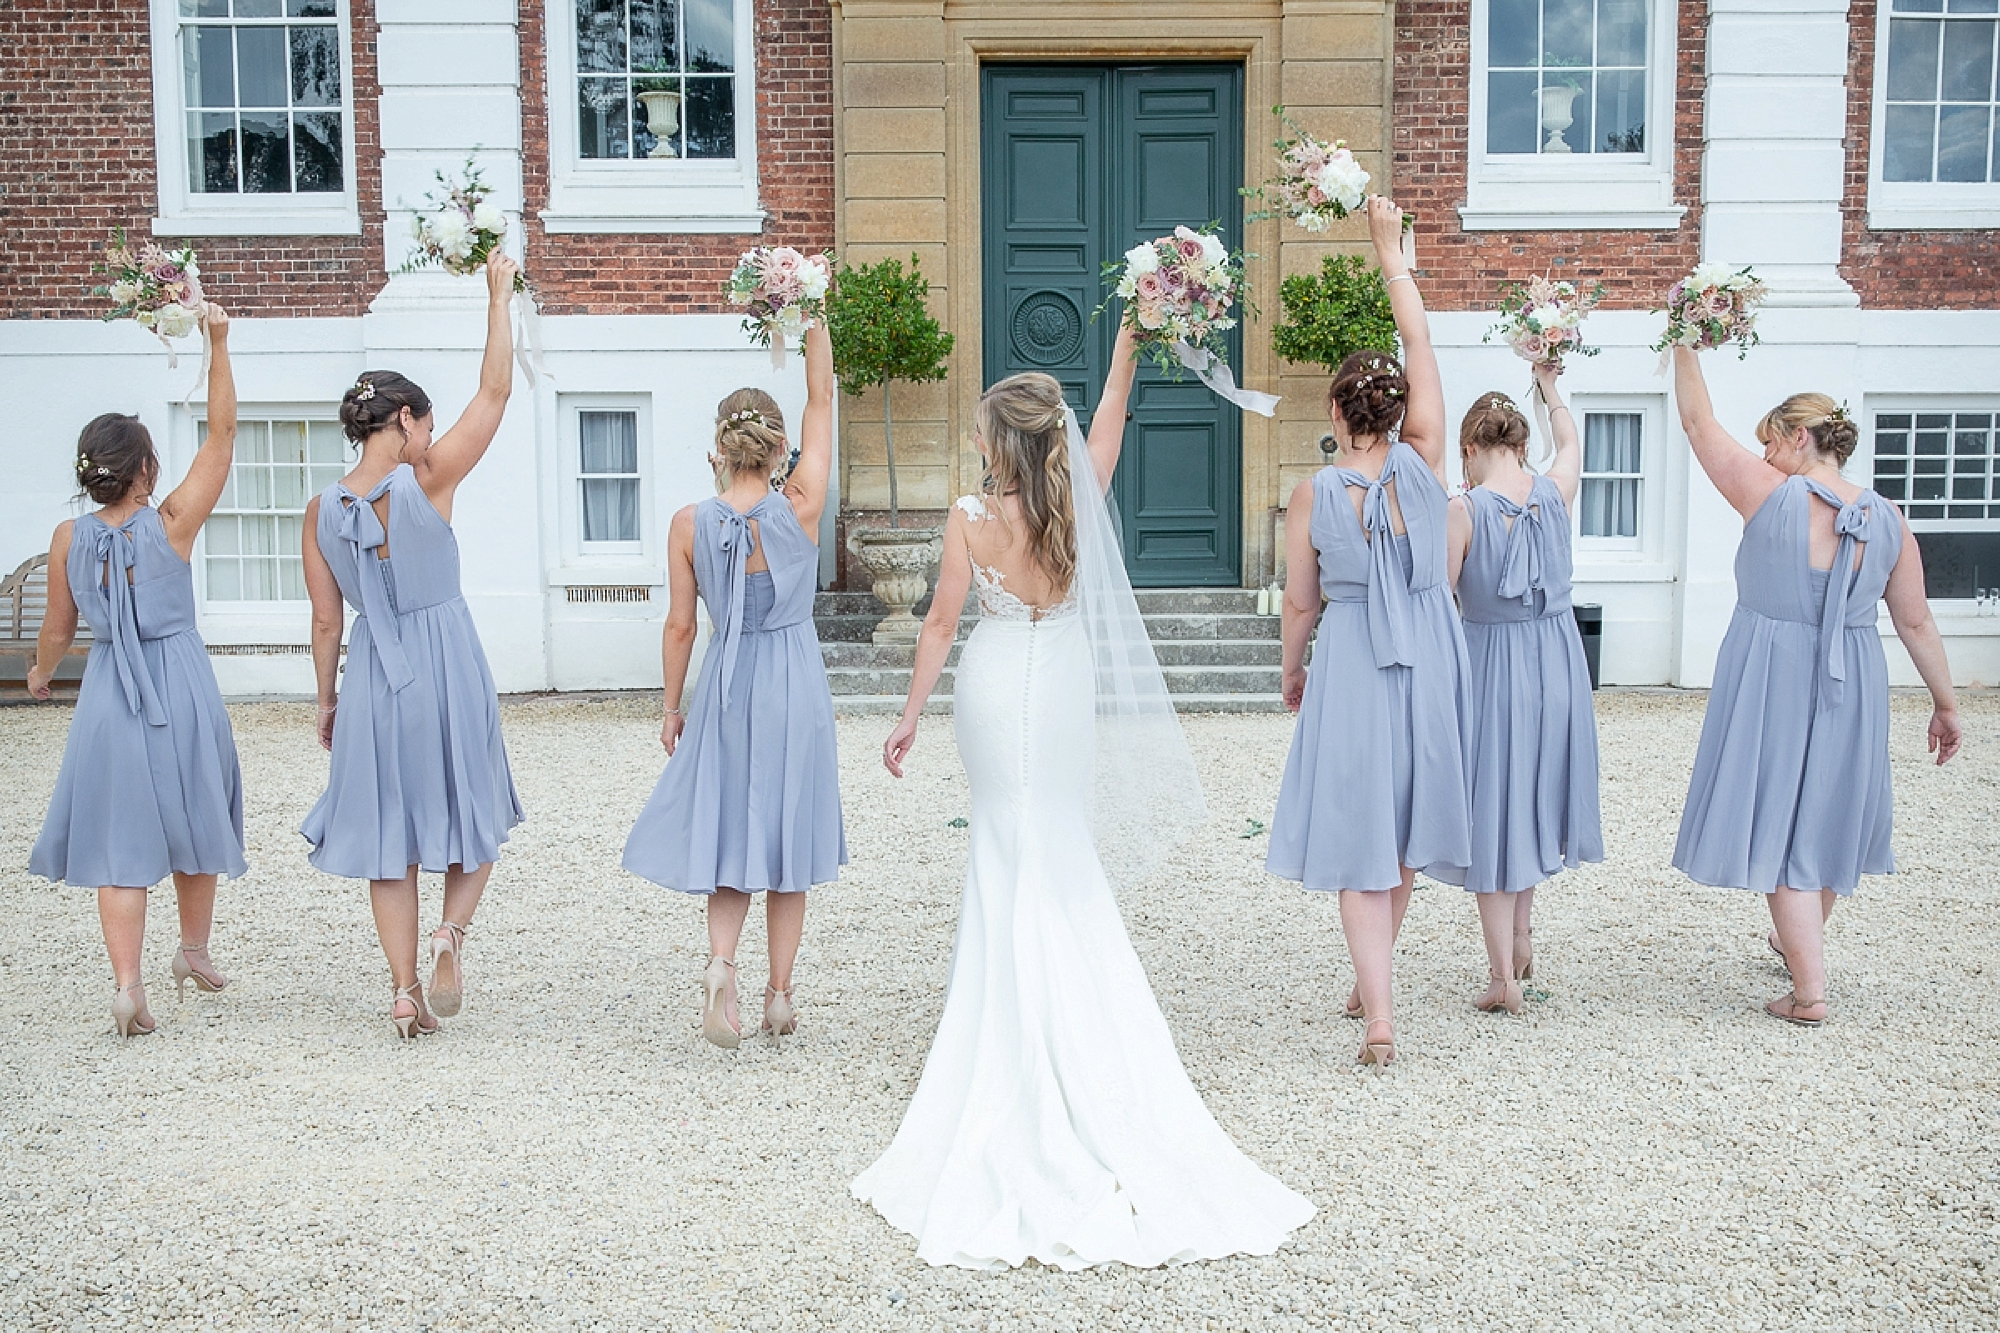 Bride in pronovias dress and her bridesmaids hold bouquets up at Devon wedding at Pynes House